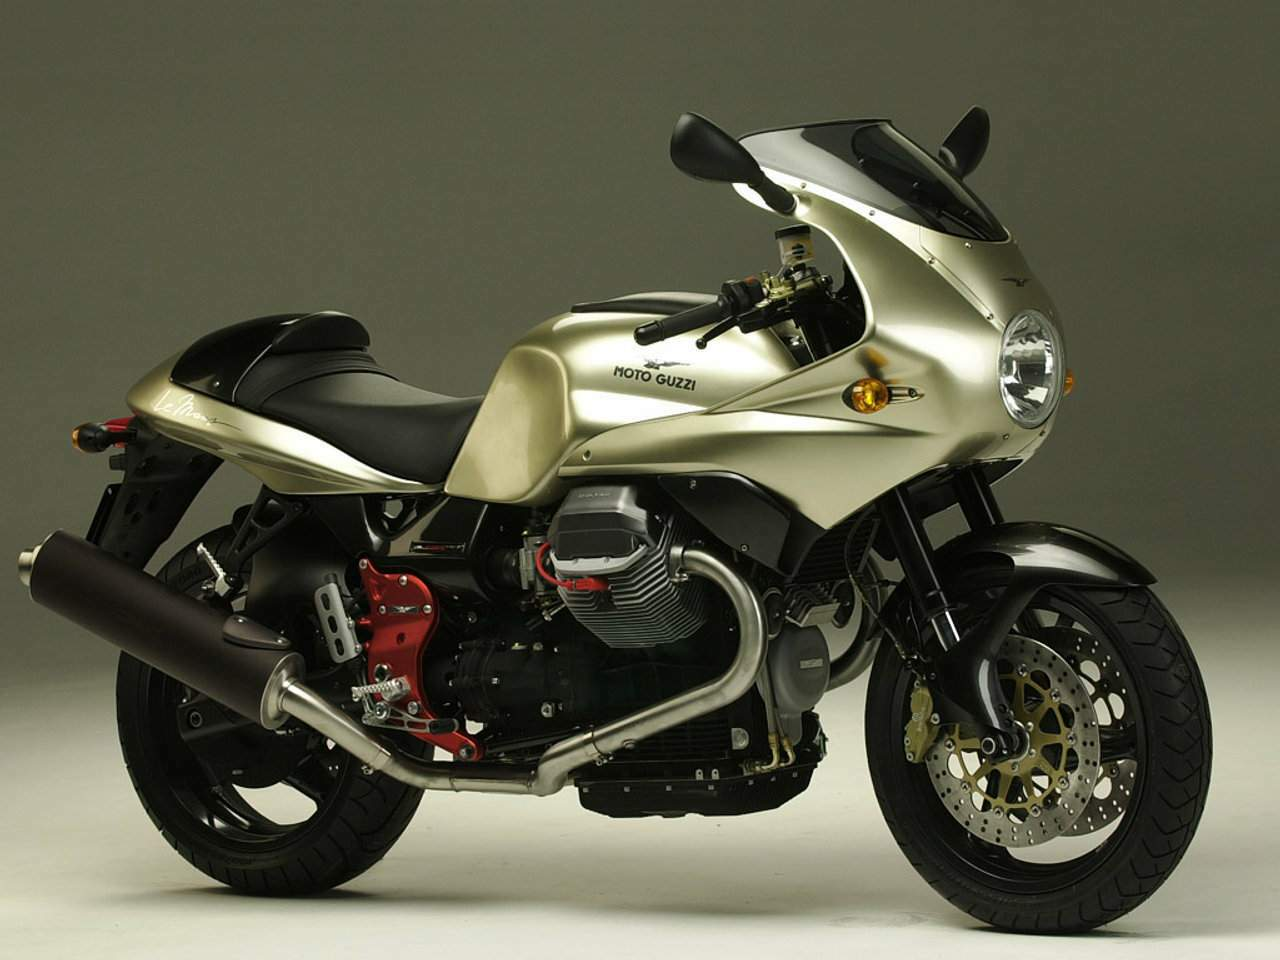 2003 moto guzzi v11 le mans pics specs and information. Black Bedroom Furniture Sets. Home Design Ideas